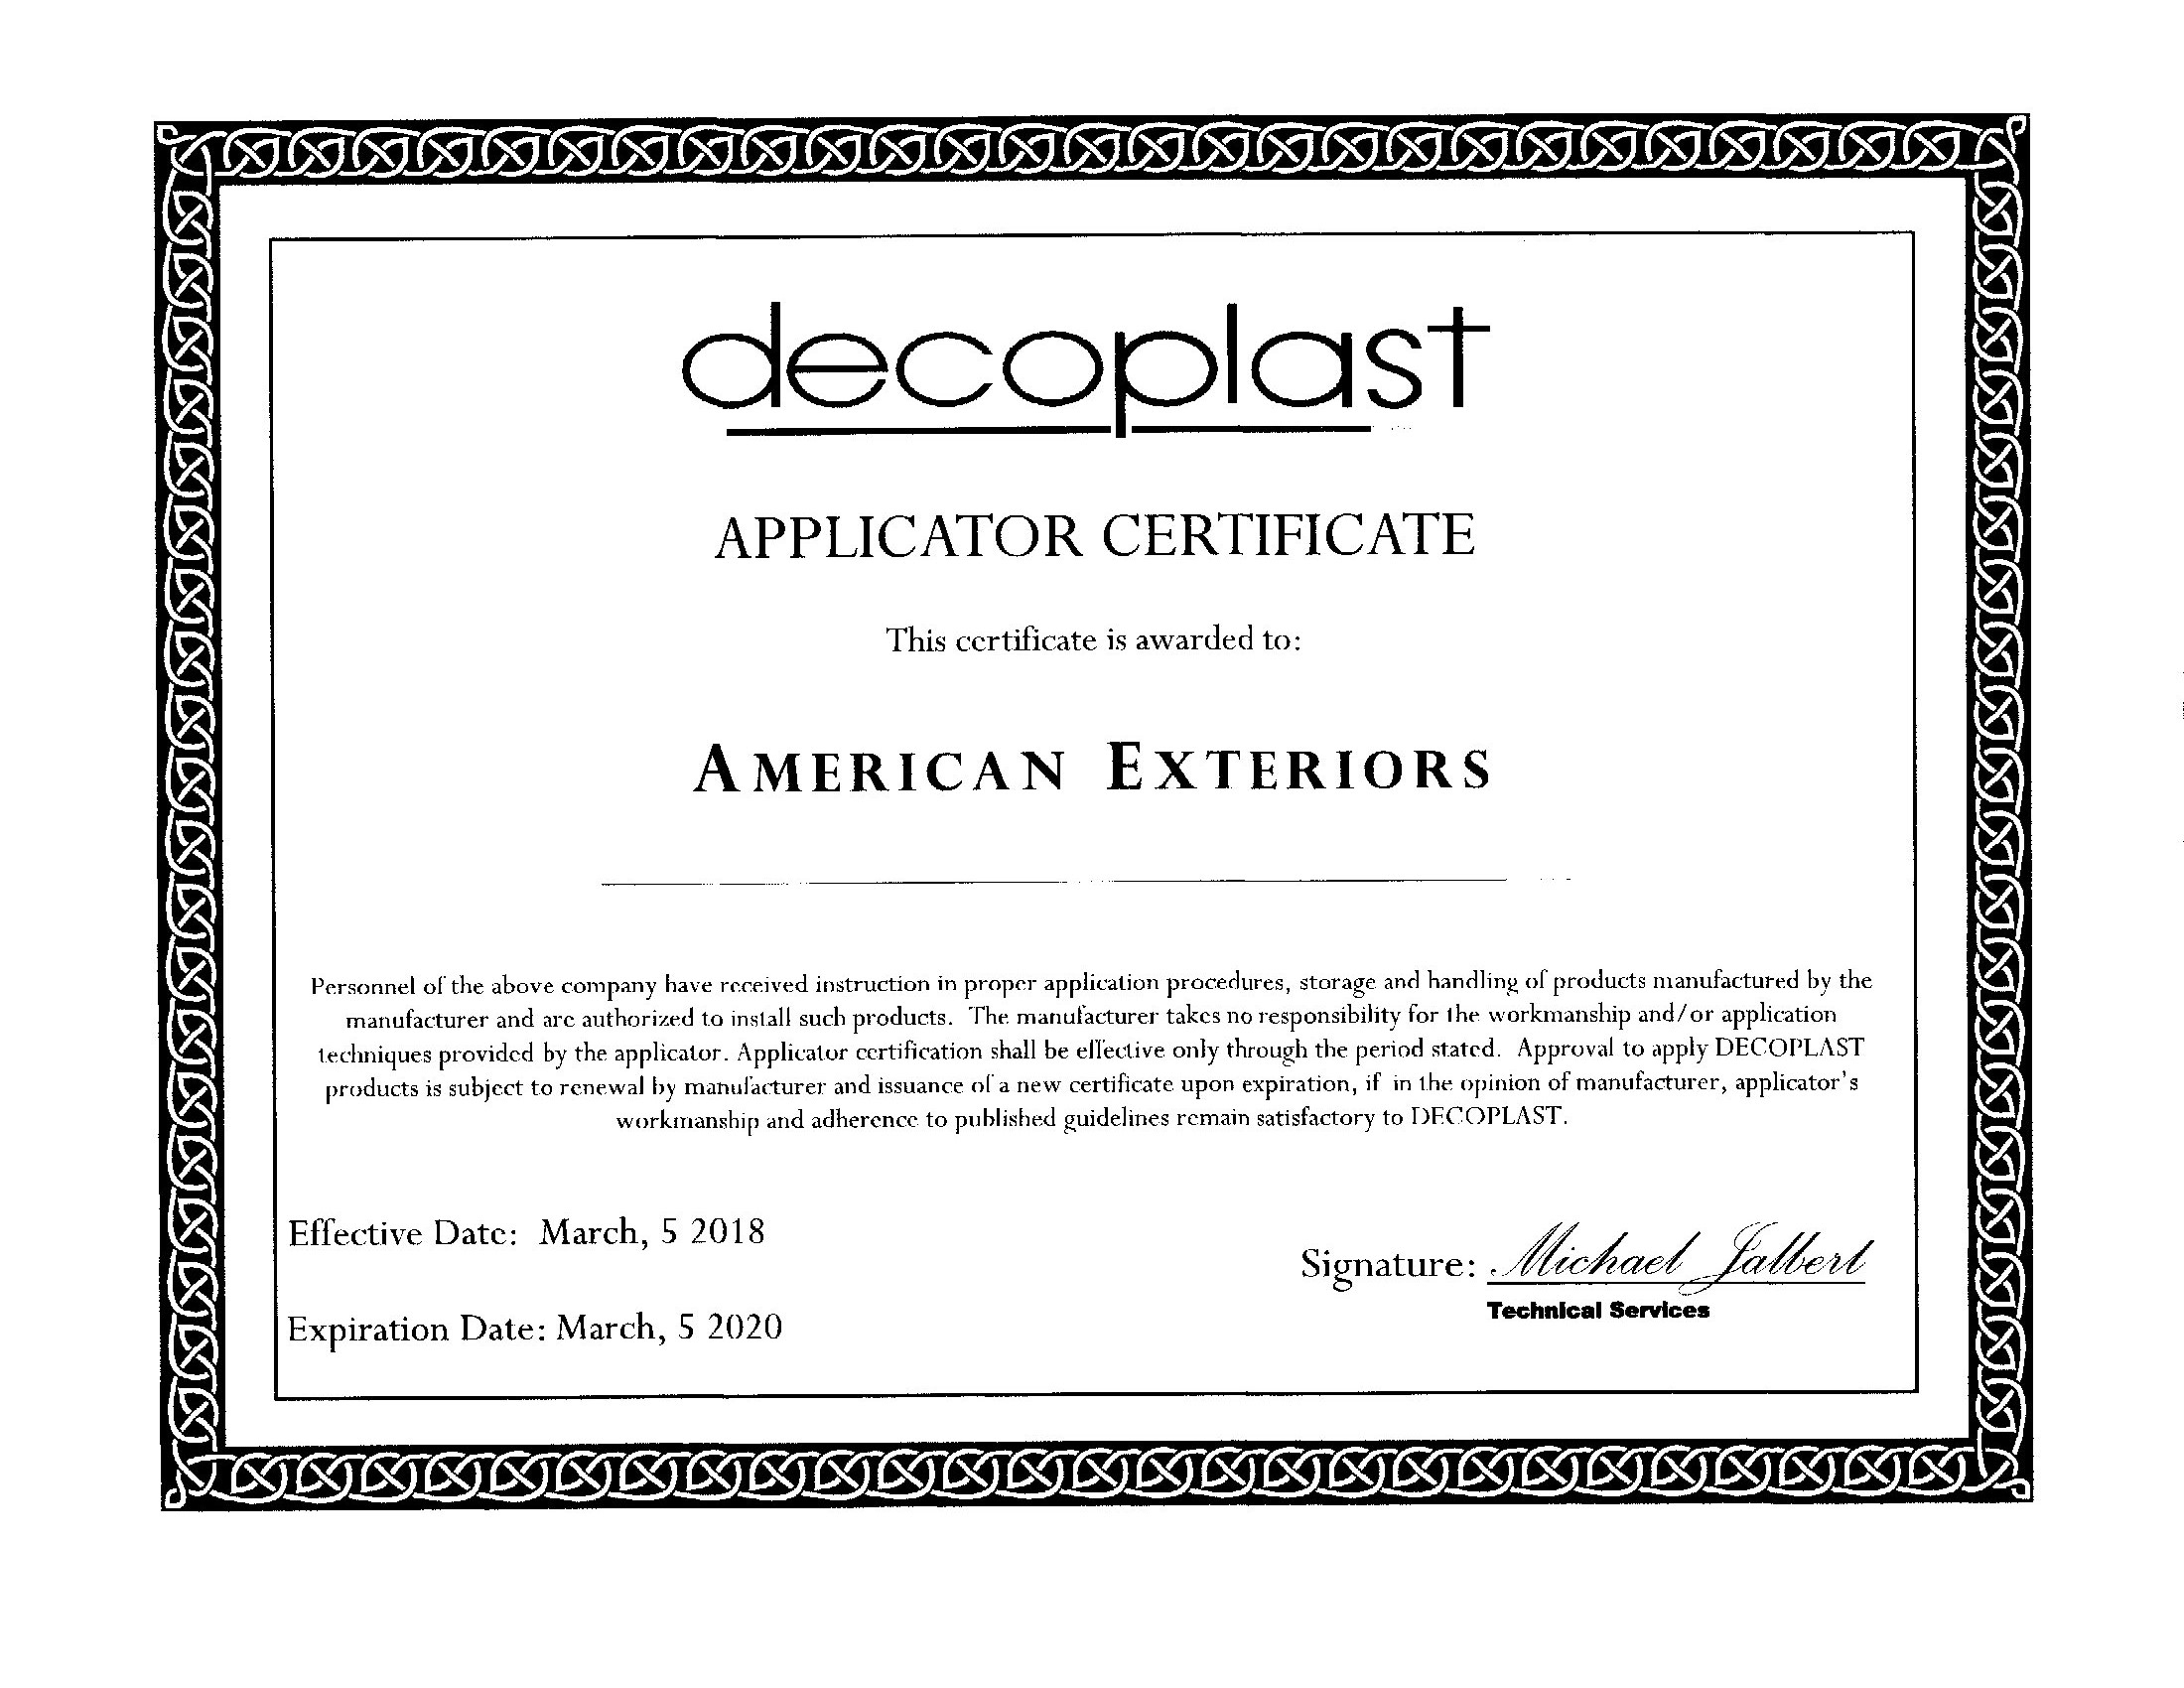 Decoplast Applicator Certificate